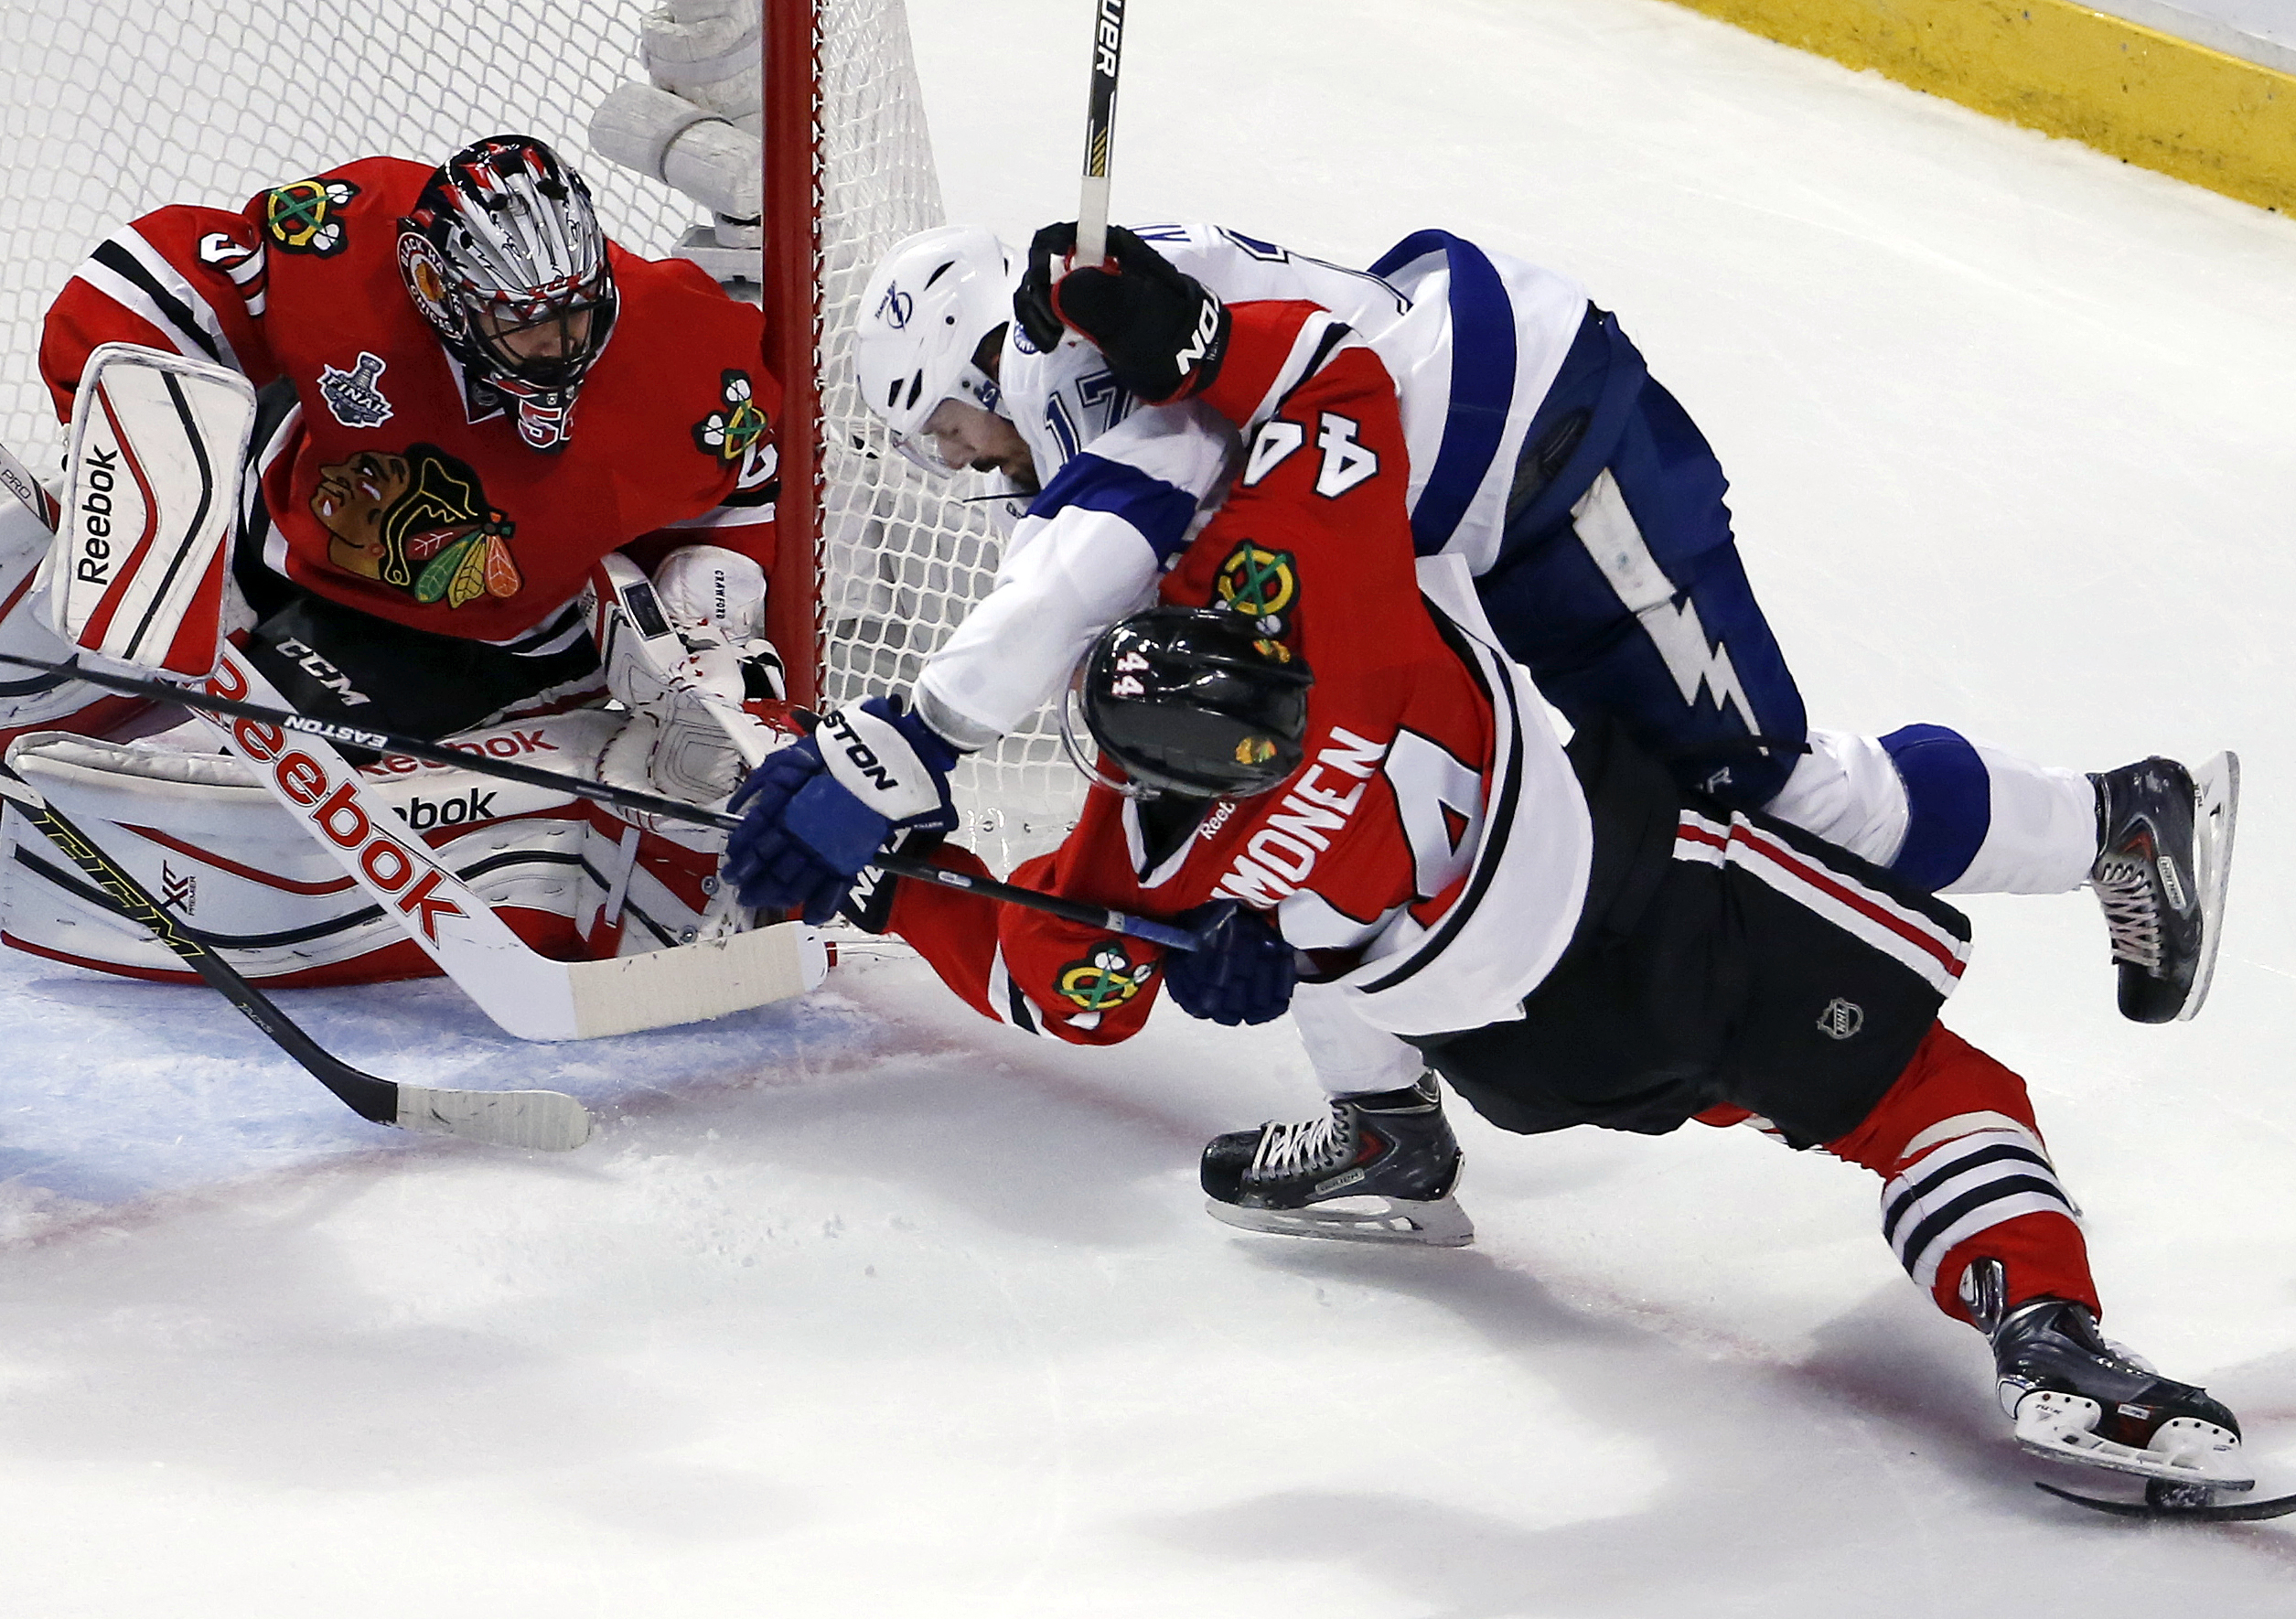 Chicago Blackhawks' Kimmo Timonen, front right, and Tampa Bay Lightning's Alex Killorn get tangled up as Blackhawks goalie Corey Crawford, left, watches during the first period in Game 4 of the NHL hockey Stanley Cup Final Wednesday, June 10, 2015, in Chi